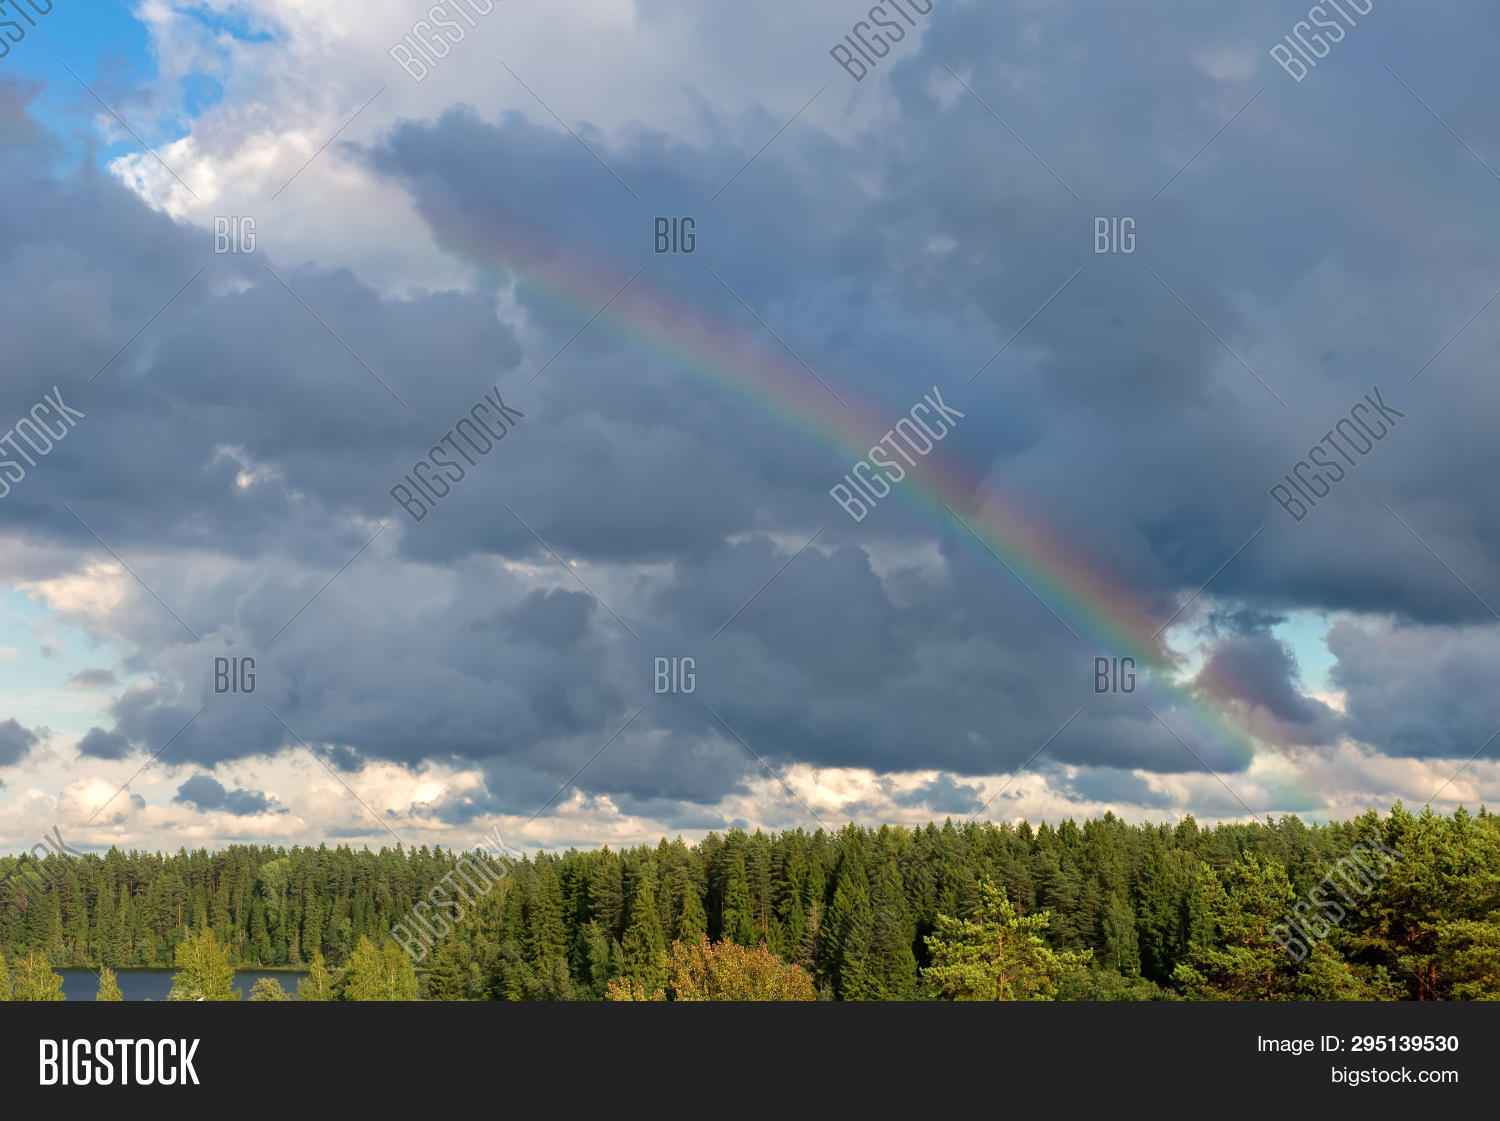 arc,atmosphere,autumn,background,beautiful,blue,bright,cloud,cloudscape,cloudy,color,countryside,day,evening,fantasy,forest,gradient,green,heaven,high,hiking,hill,horizon,landscape,light,morning,natural,nature,orange,panorama,park,pine,rain,rainbow,rock,rural,scenic,sky,spectrum,spring,storm,summer,sun,sunlight,sunset,sunshine,travel,weather,white,wood